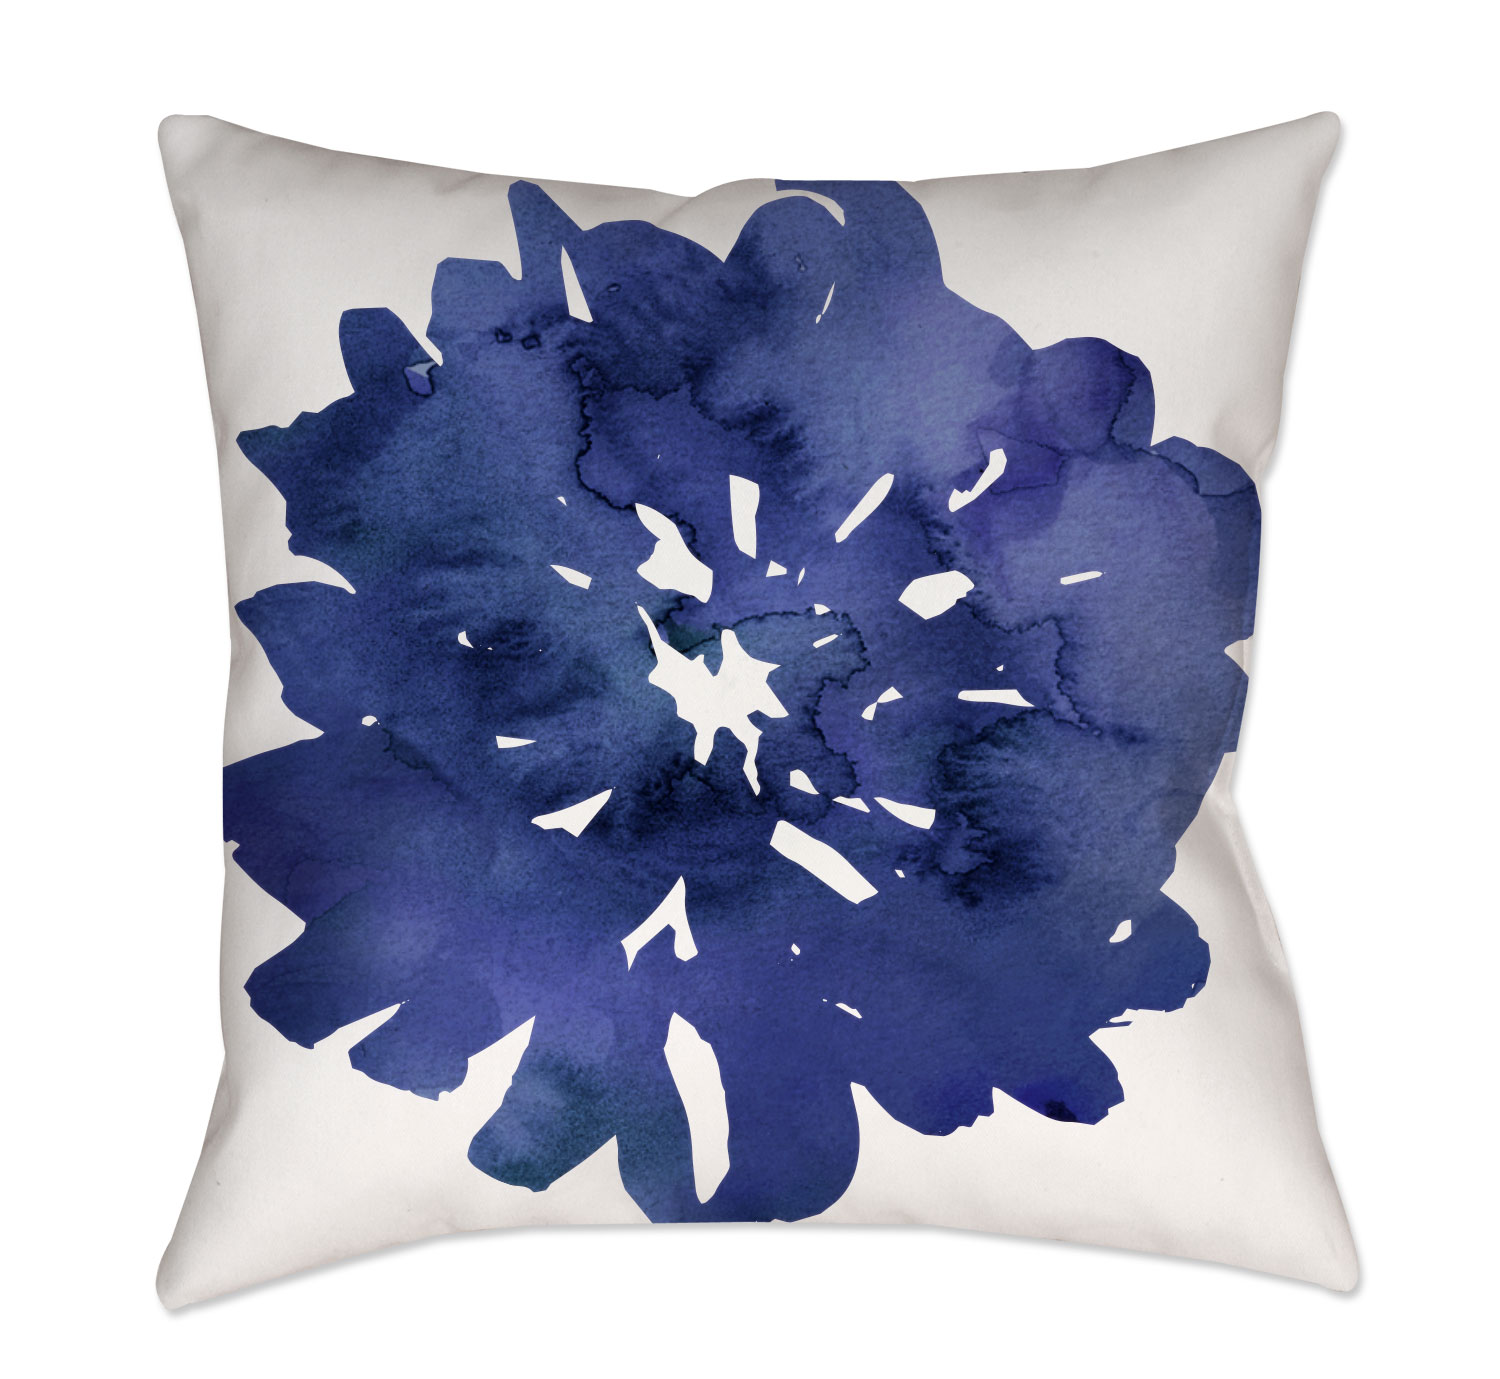 Navy Blue Watercolor Floral Throw Pillow- Project Cottage